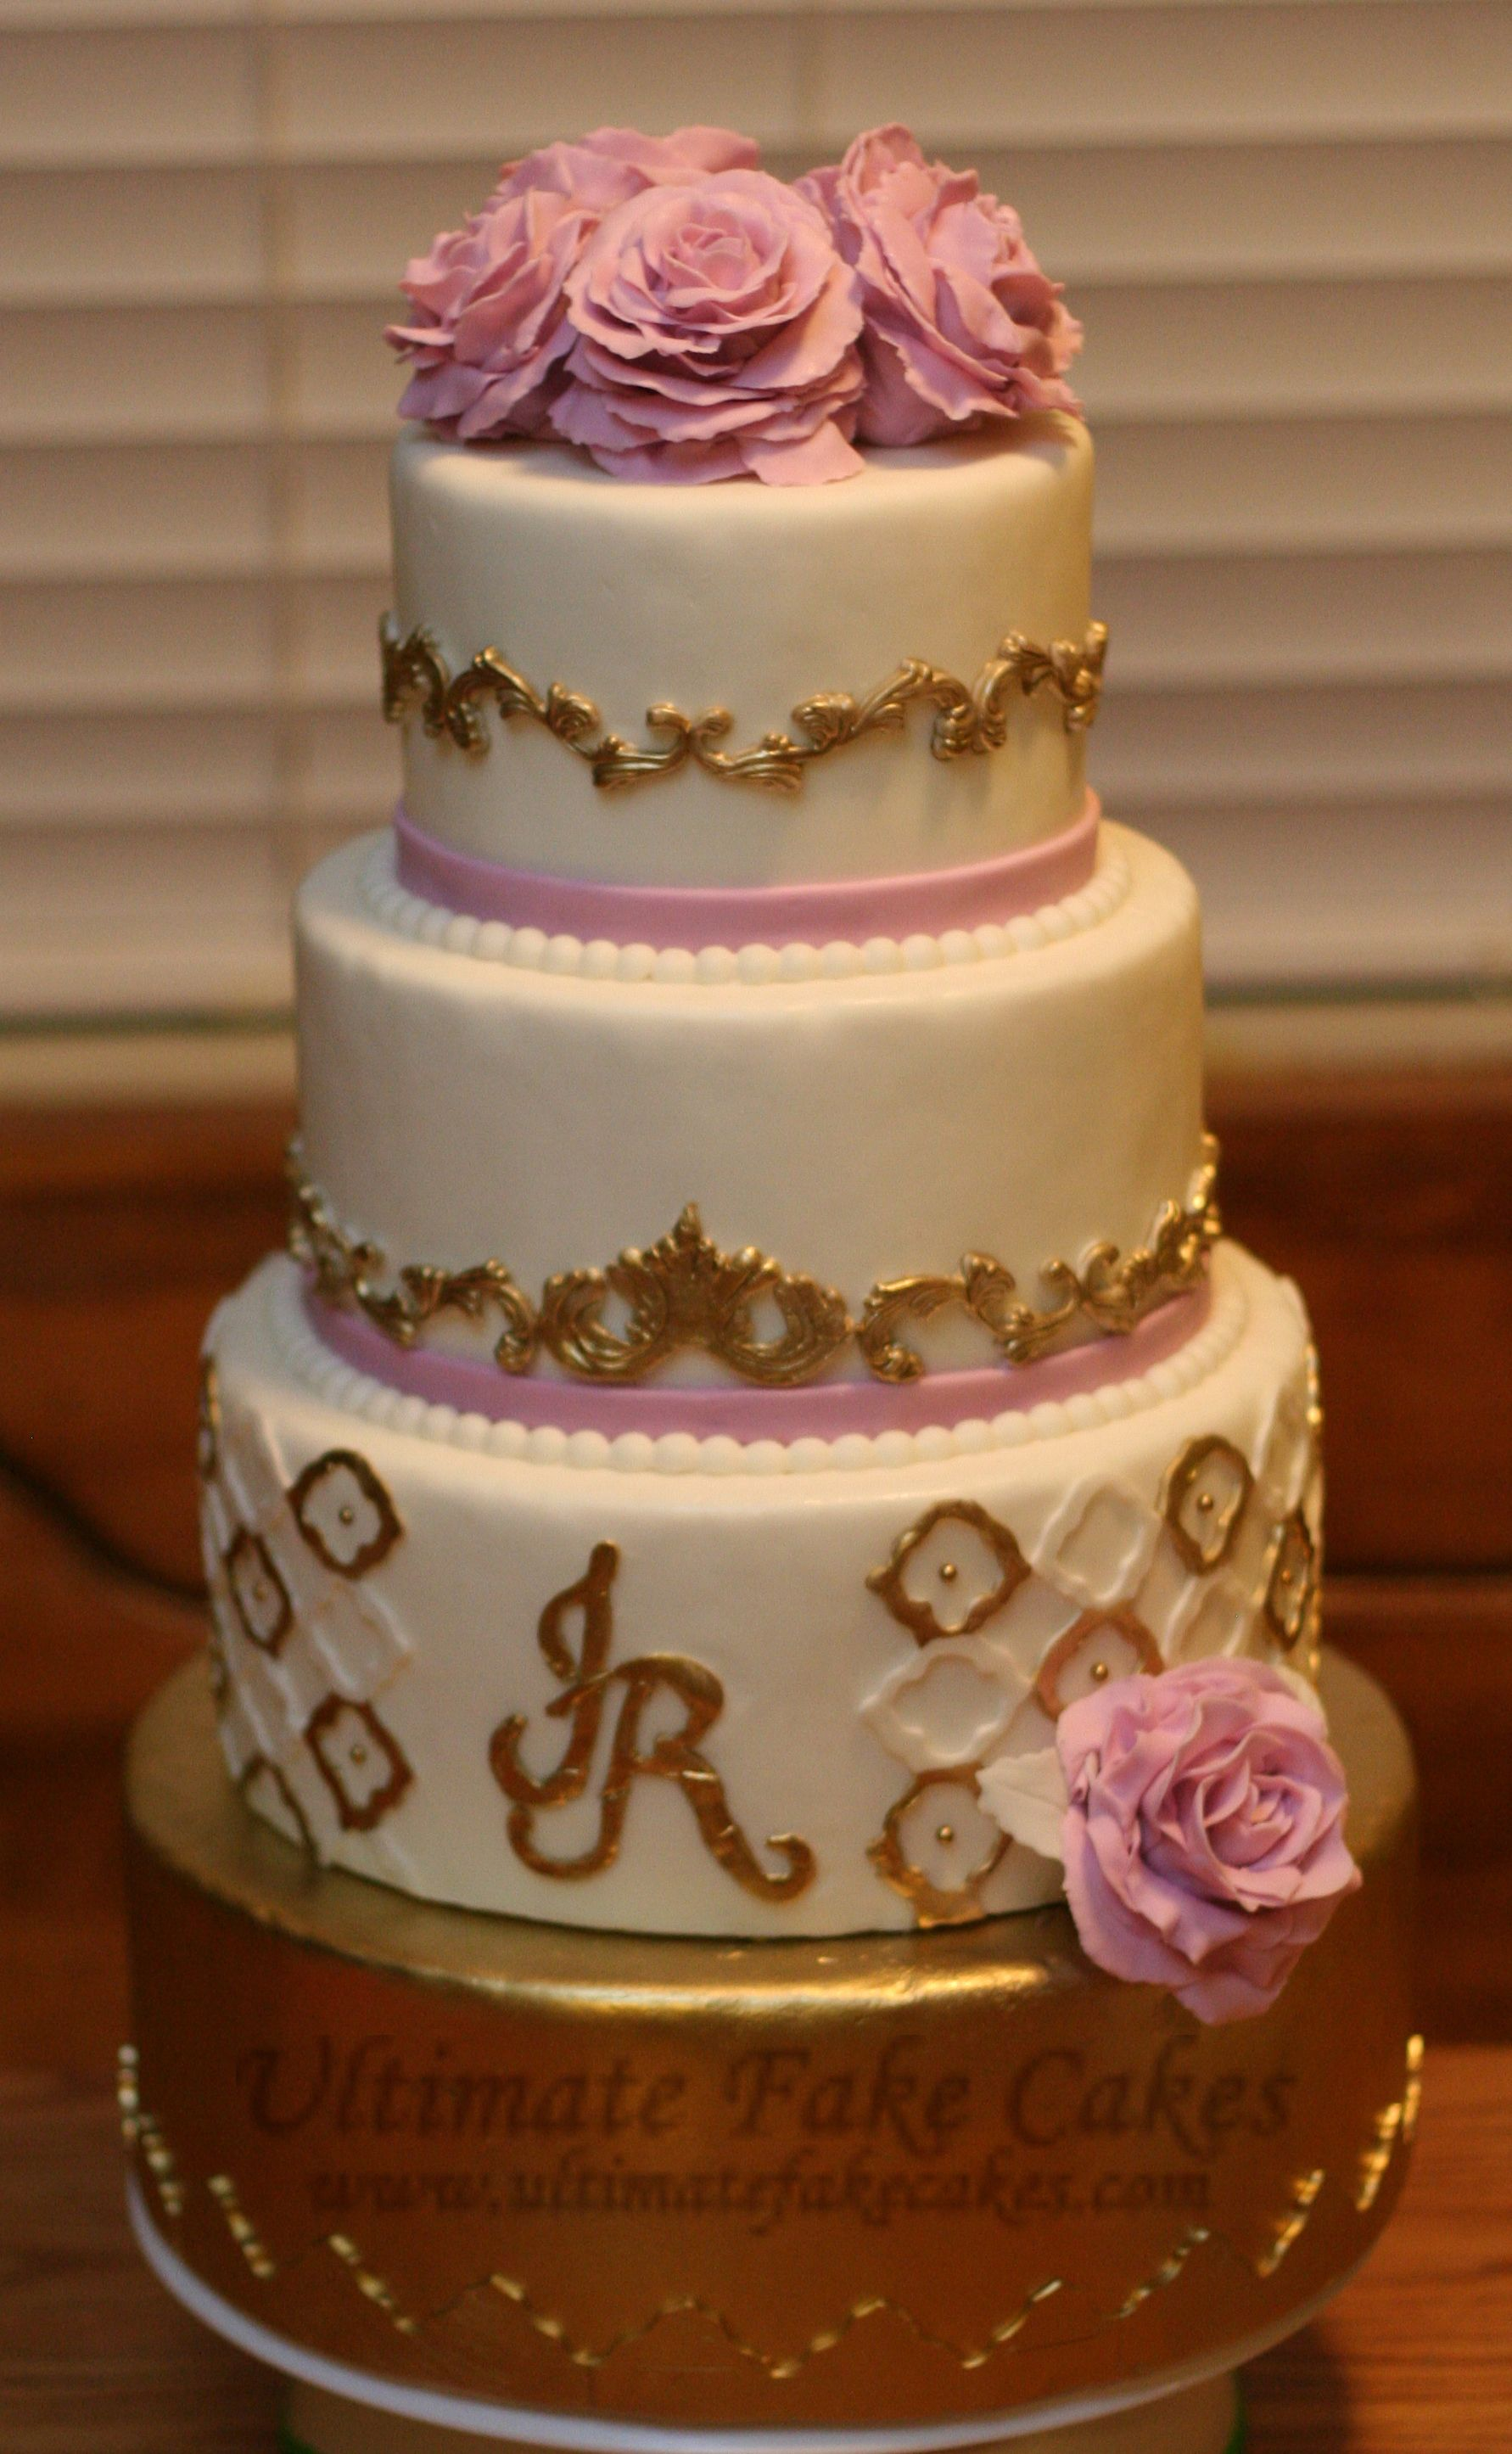 4-Tier Gold scrolling with peonies adoring the top. www.ultimatefakecakes.com